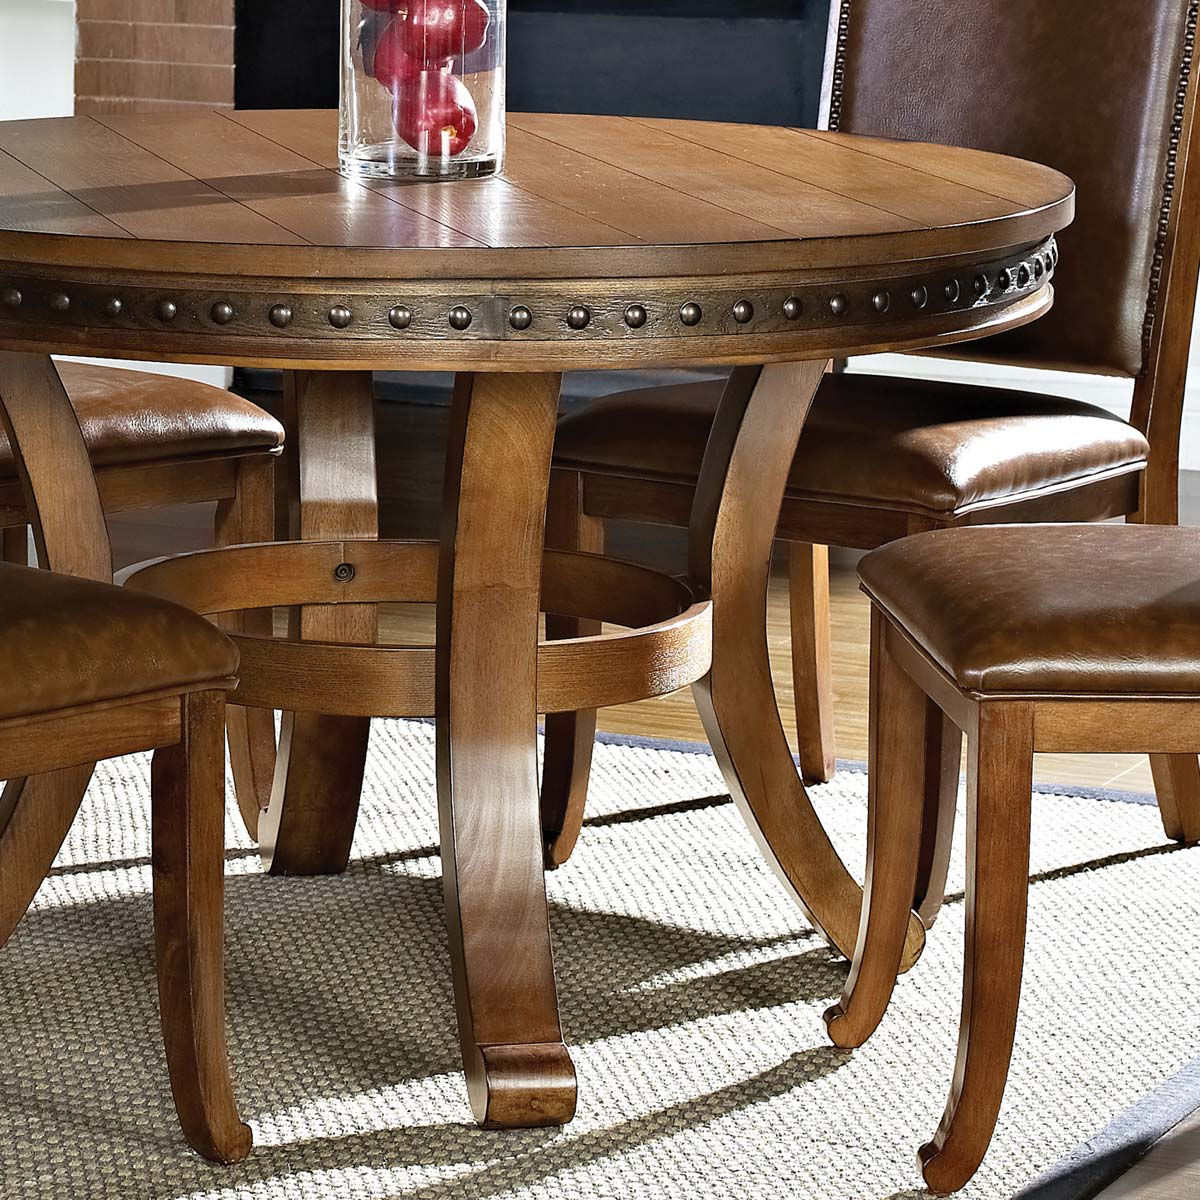 ... Ashbrook 5 Piece Round Dining Set   Nail Heads, Brown, Oak Finish   SSC  ...